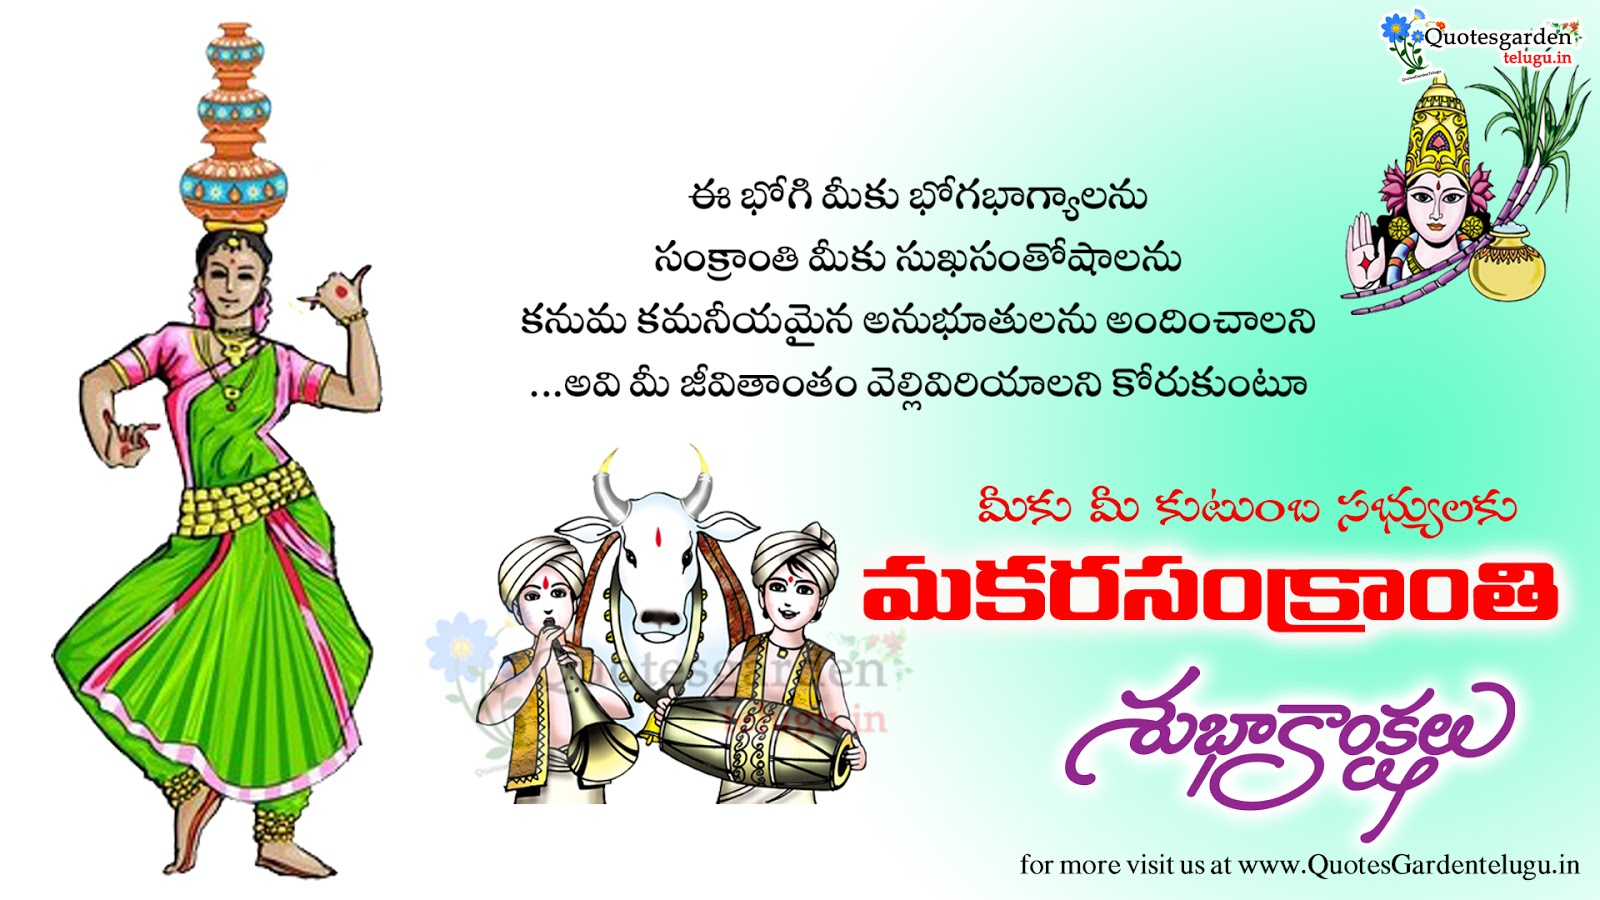 Happy Sankranthi telugu wishes images greeting cards for fb friends whatsapp status